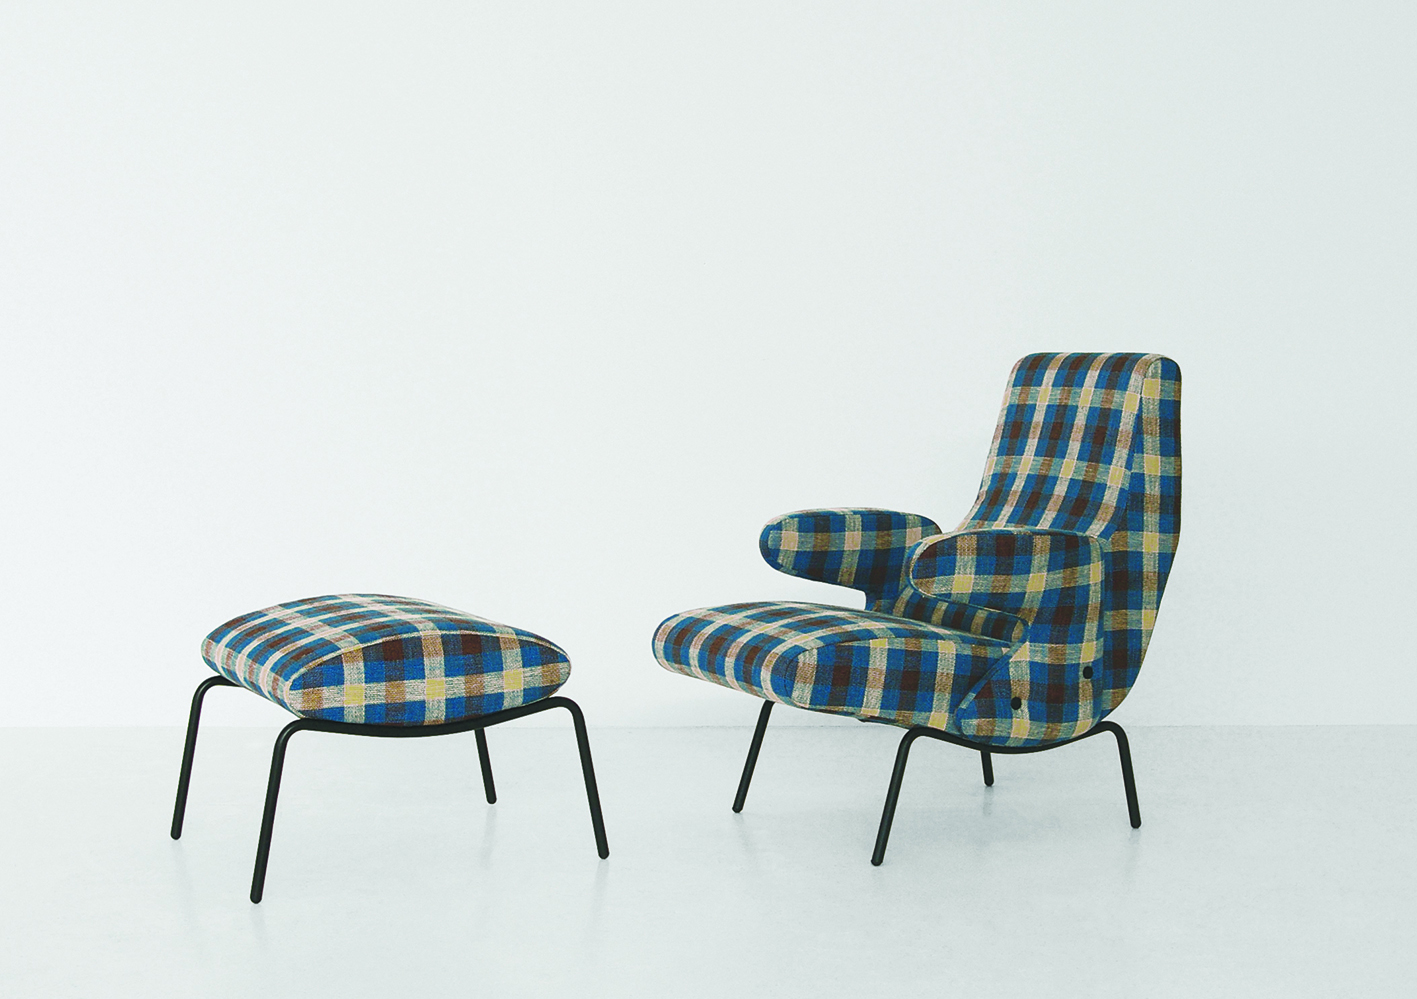 The 'Delfino' chair by Erberto Carboni is one of Arflex's many classics from the 50's but will be shown in this plaid fabric for a completely new look.